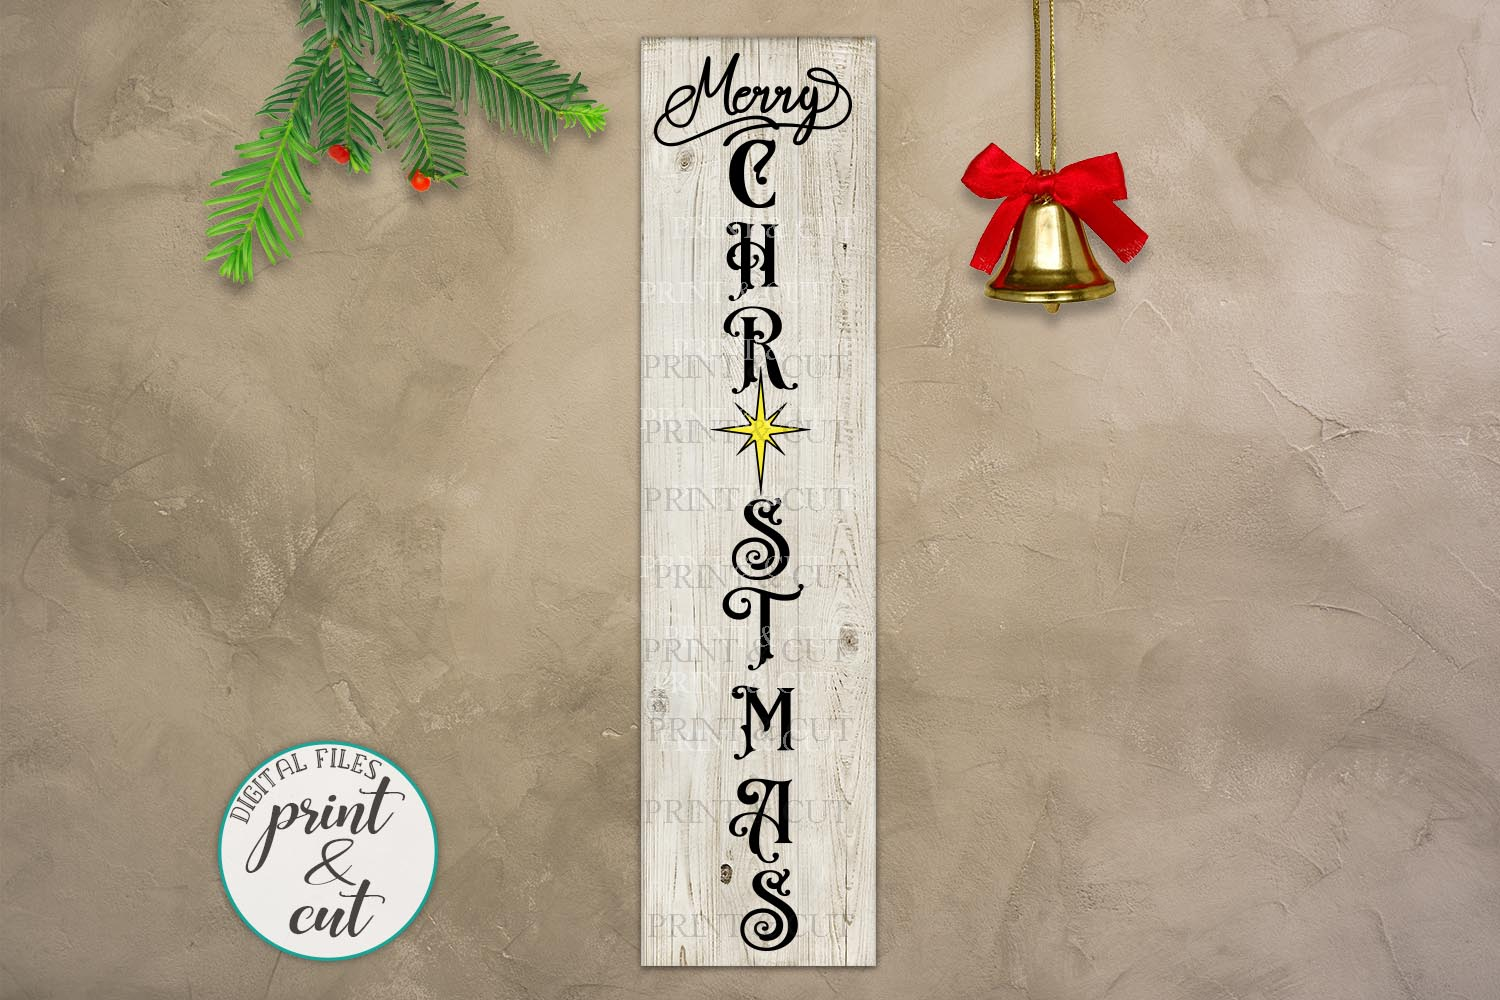 Merry Christmas Happy New Year Believe bundle vertical sign example image 3